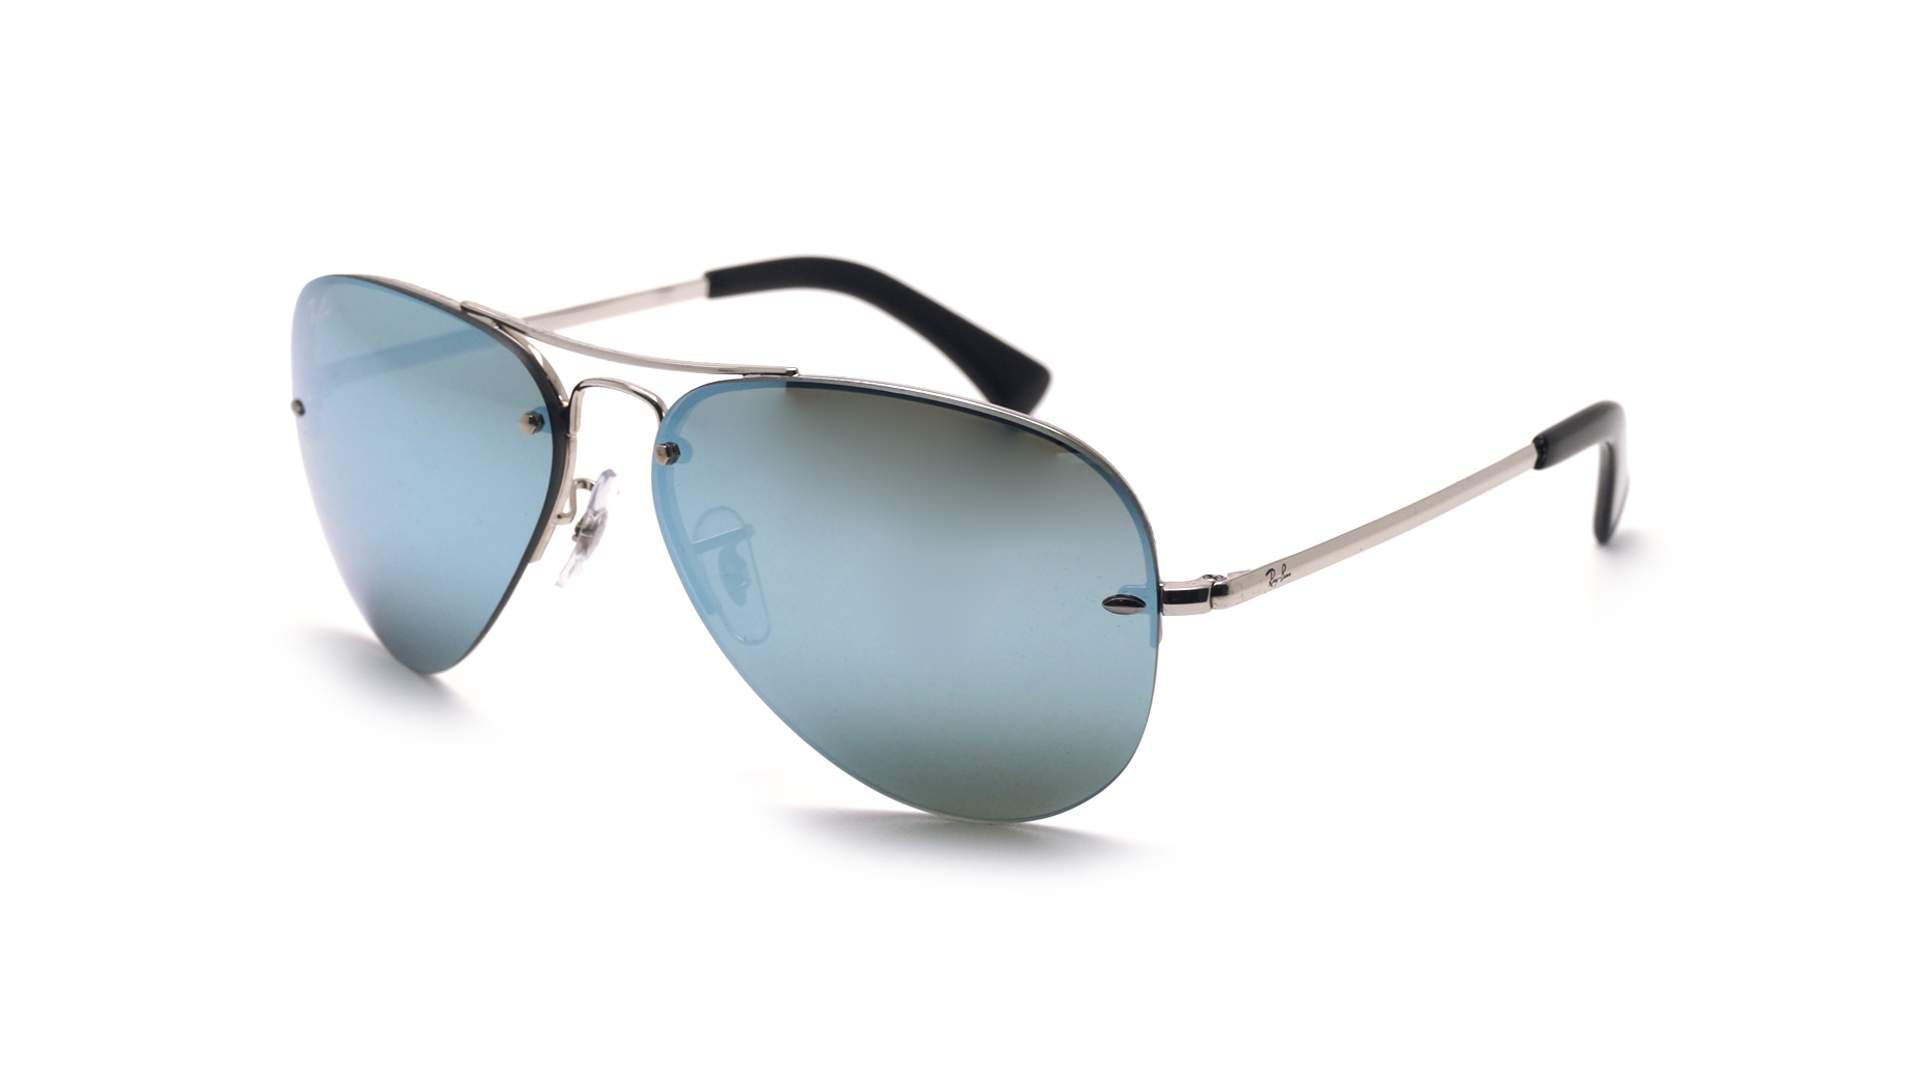 7ce8472659e Sunglasses Ray-Ban RB3449 003 30 59-14 Silver Large Mirror